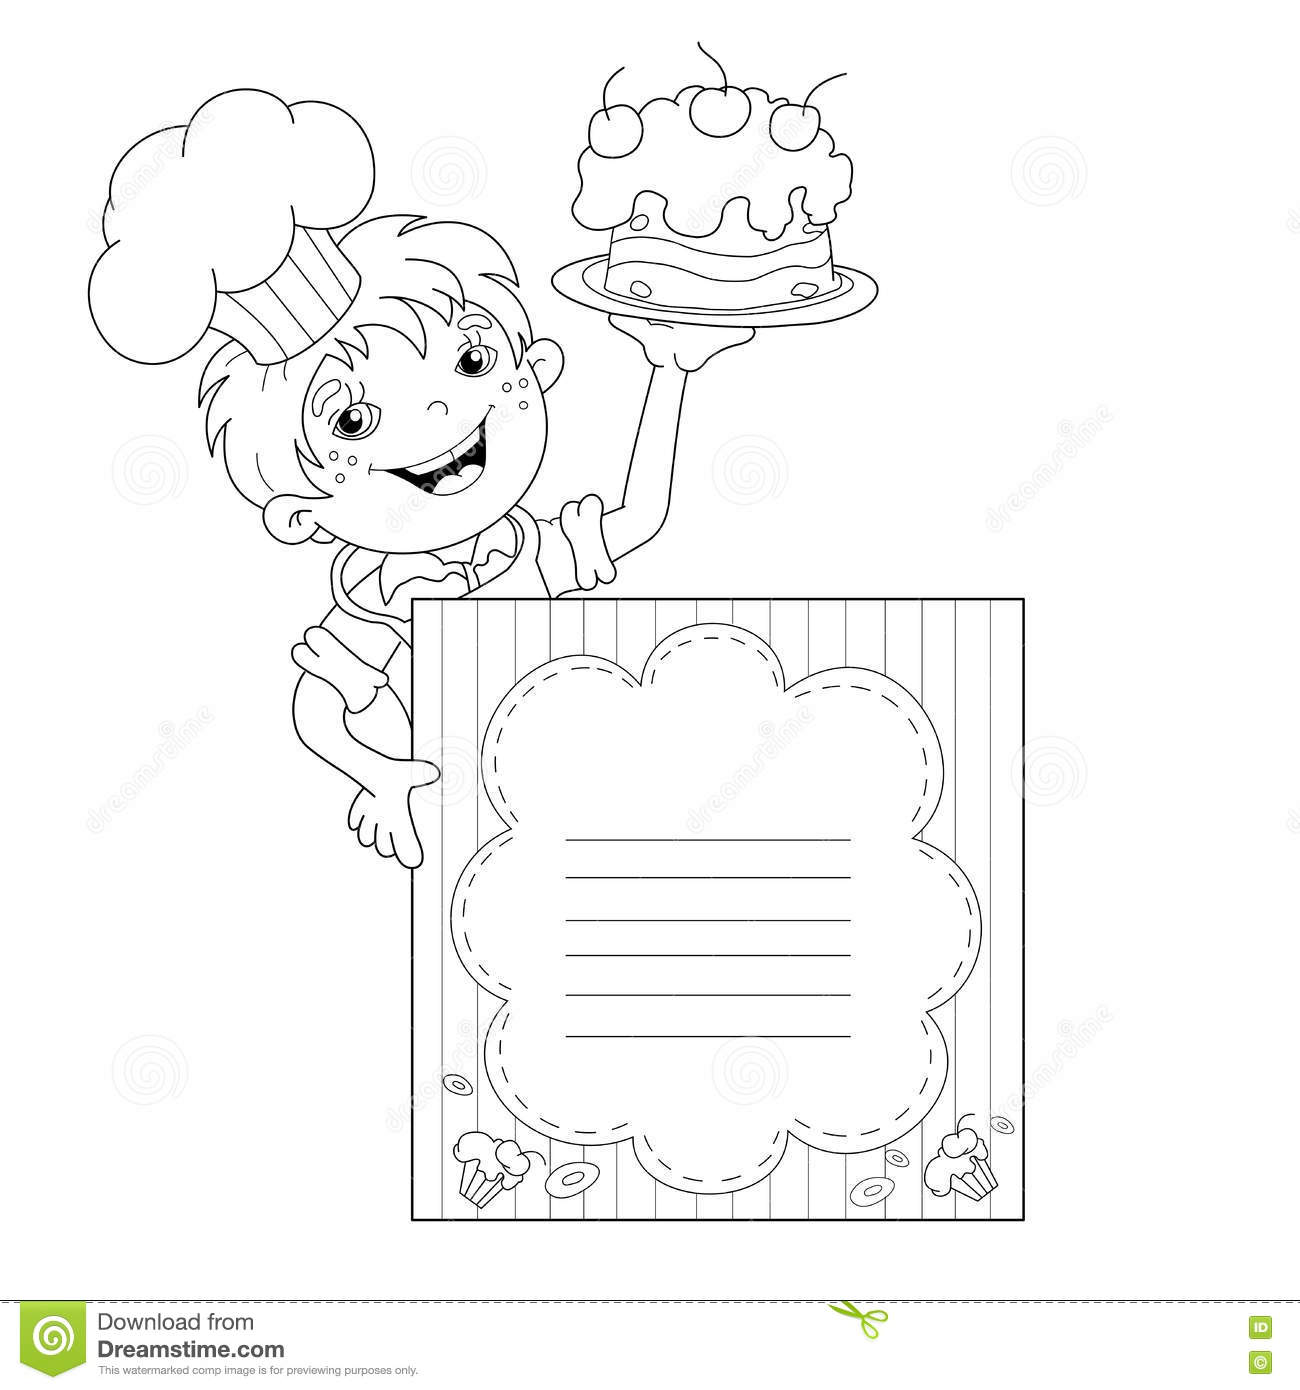 Coloring Page Outline Of Cartoon Boy Chef With Cake Template For Menu Book Kids